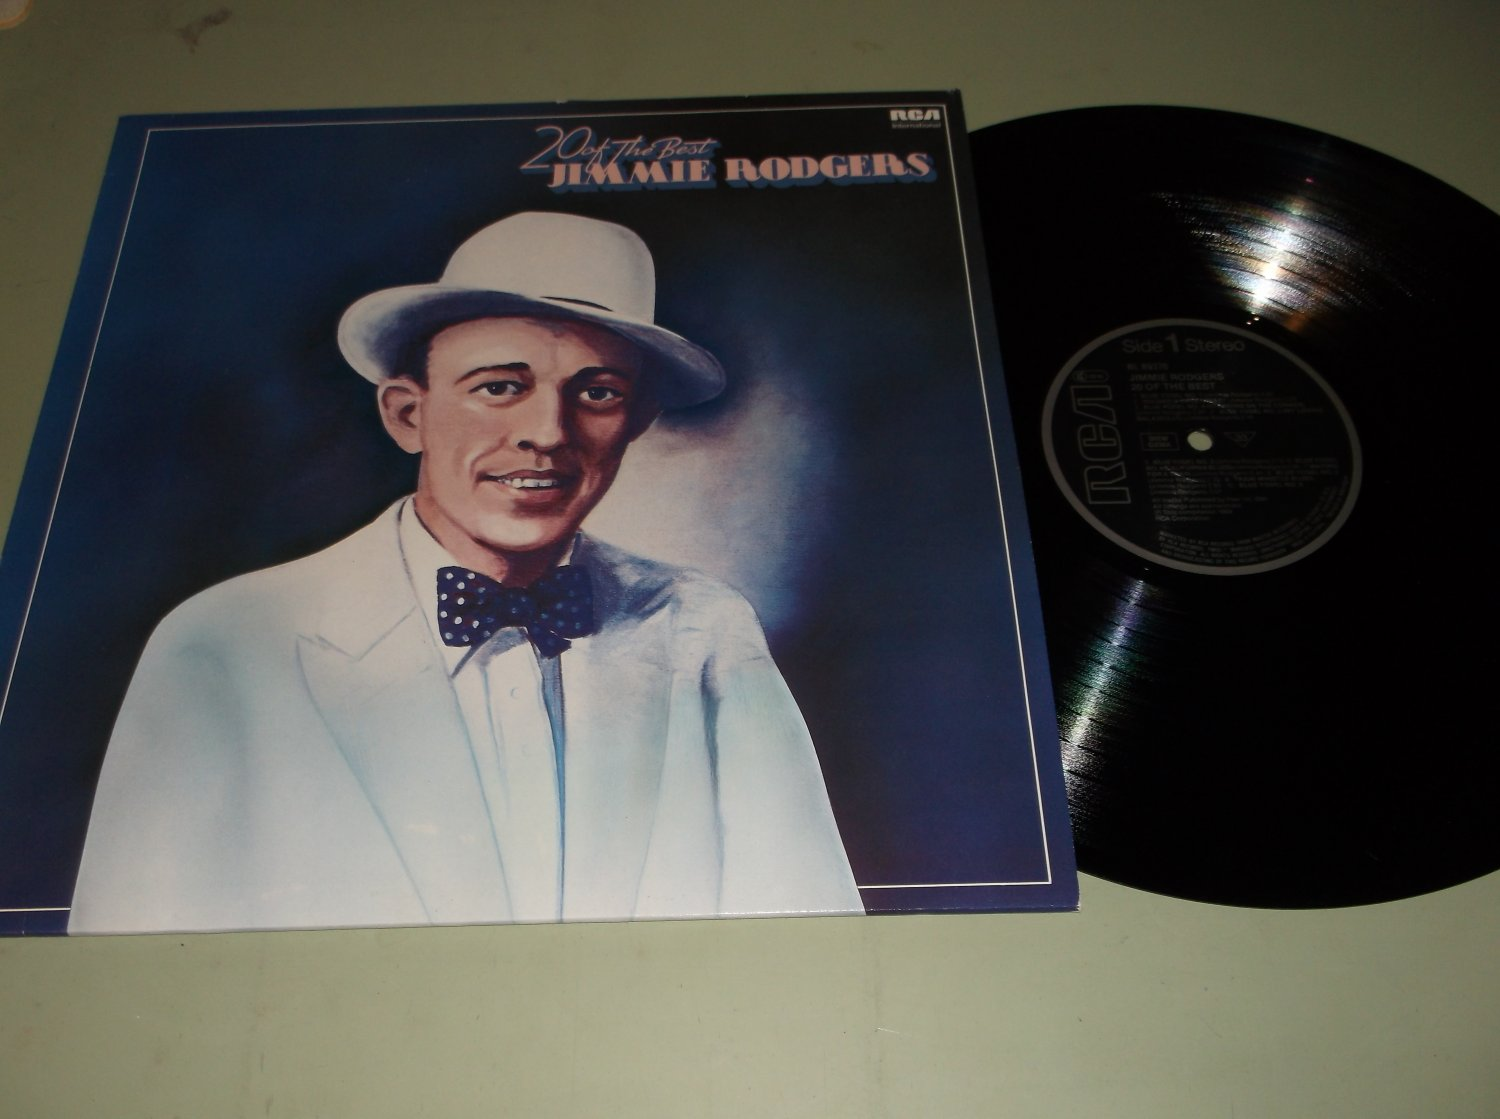 Jimmie Rodgers - 20 Of The Best - RCA 89370 - German Issue Folk LP